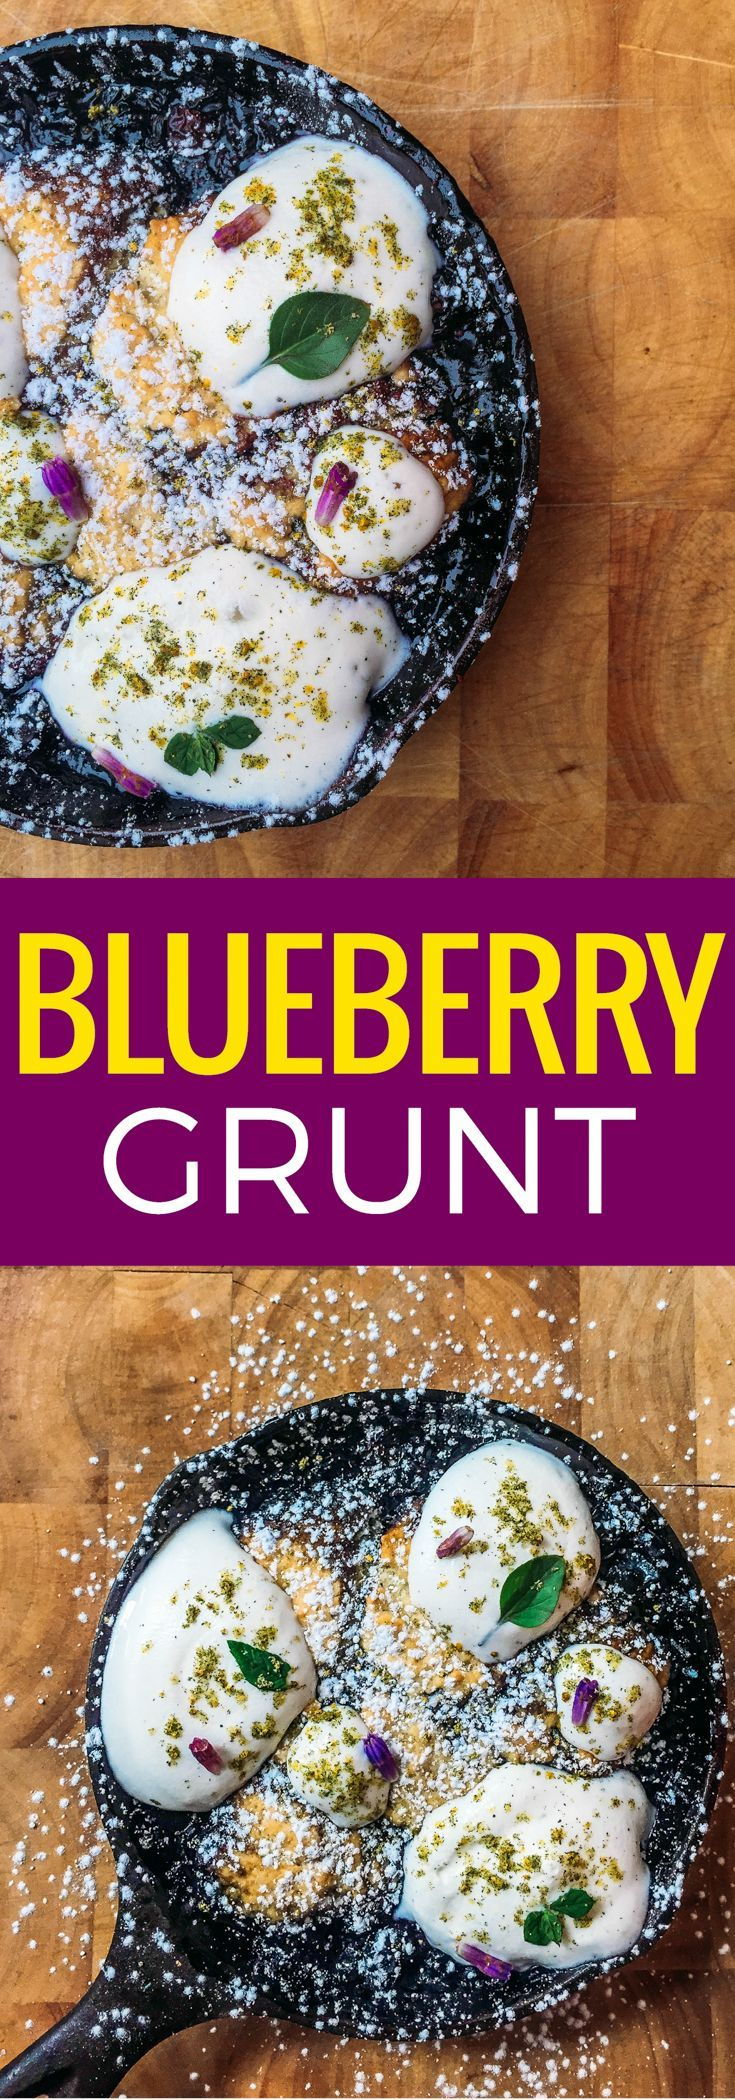 A uniquely Canadian recipe. Learn this simple blueberry grunt recipe, a simple blueberry cobbler recipe from Nova Scotia that we've modernized by smoking the blueberries. ~ http://www.baconismagic.ca